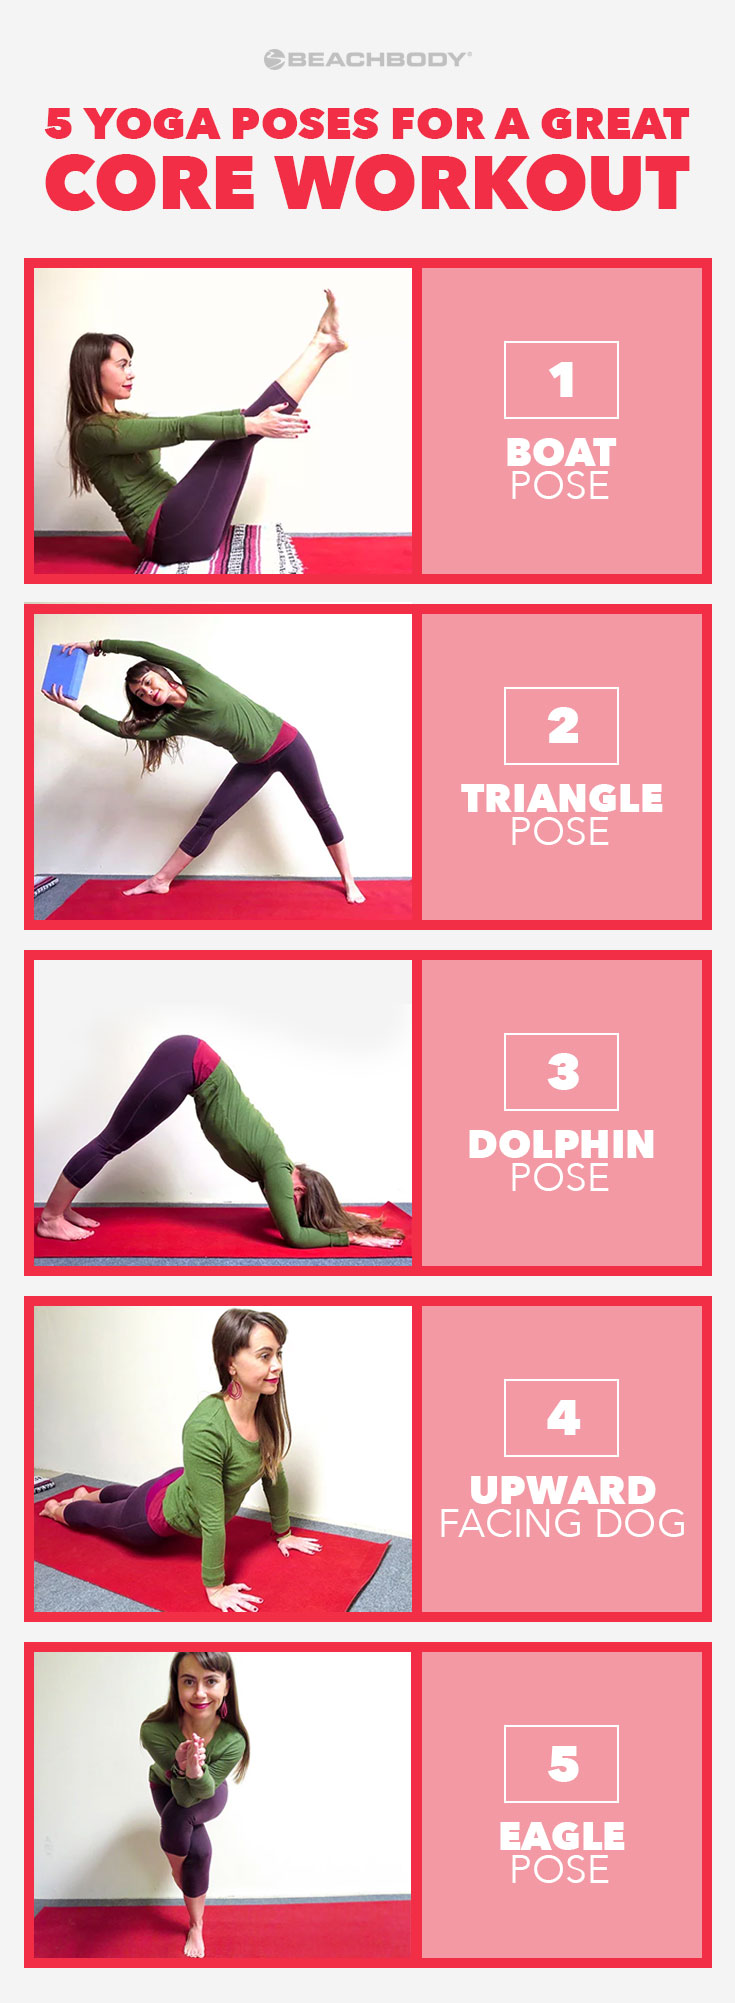 Core workouts sometimes only engage one, or some, of your abdominal muscles. The core is not just one muscle, it is a group of intertwining muscles in the torso that work together to support your spine and pelvis. Check out these 5 Yoga poses for a awesome core workout for overall core strength.